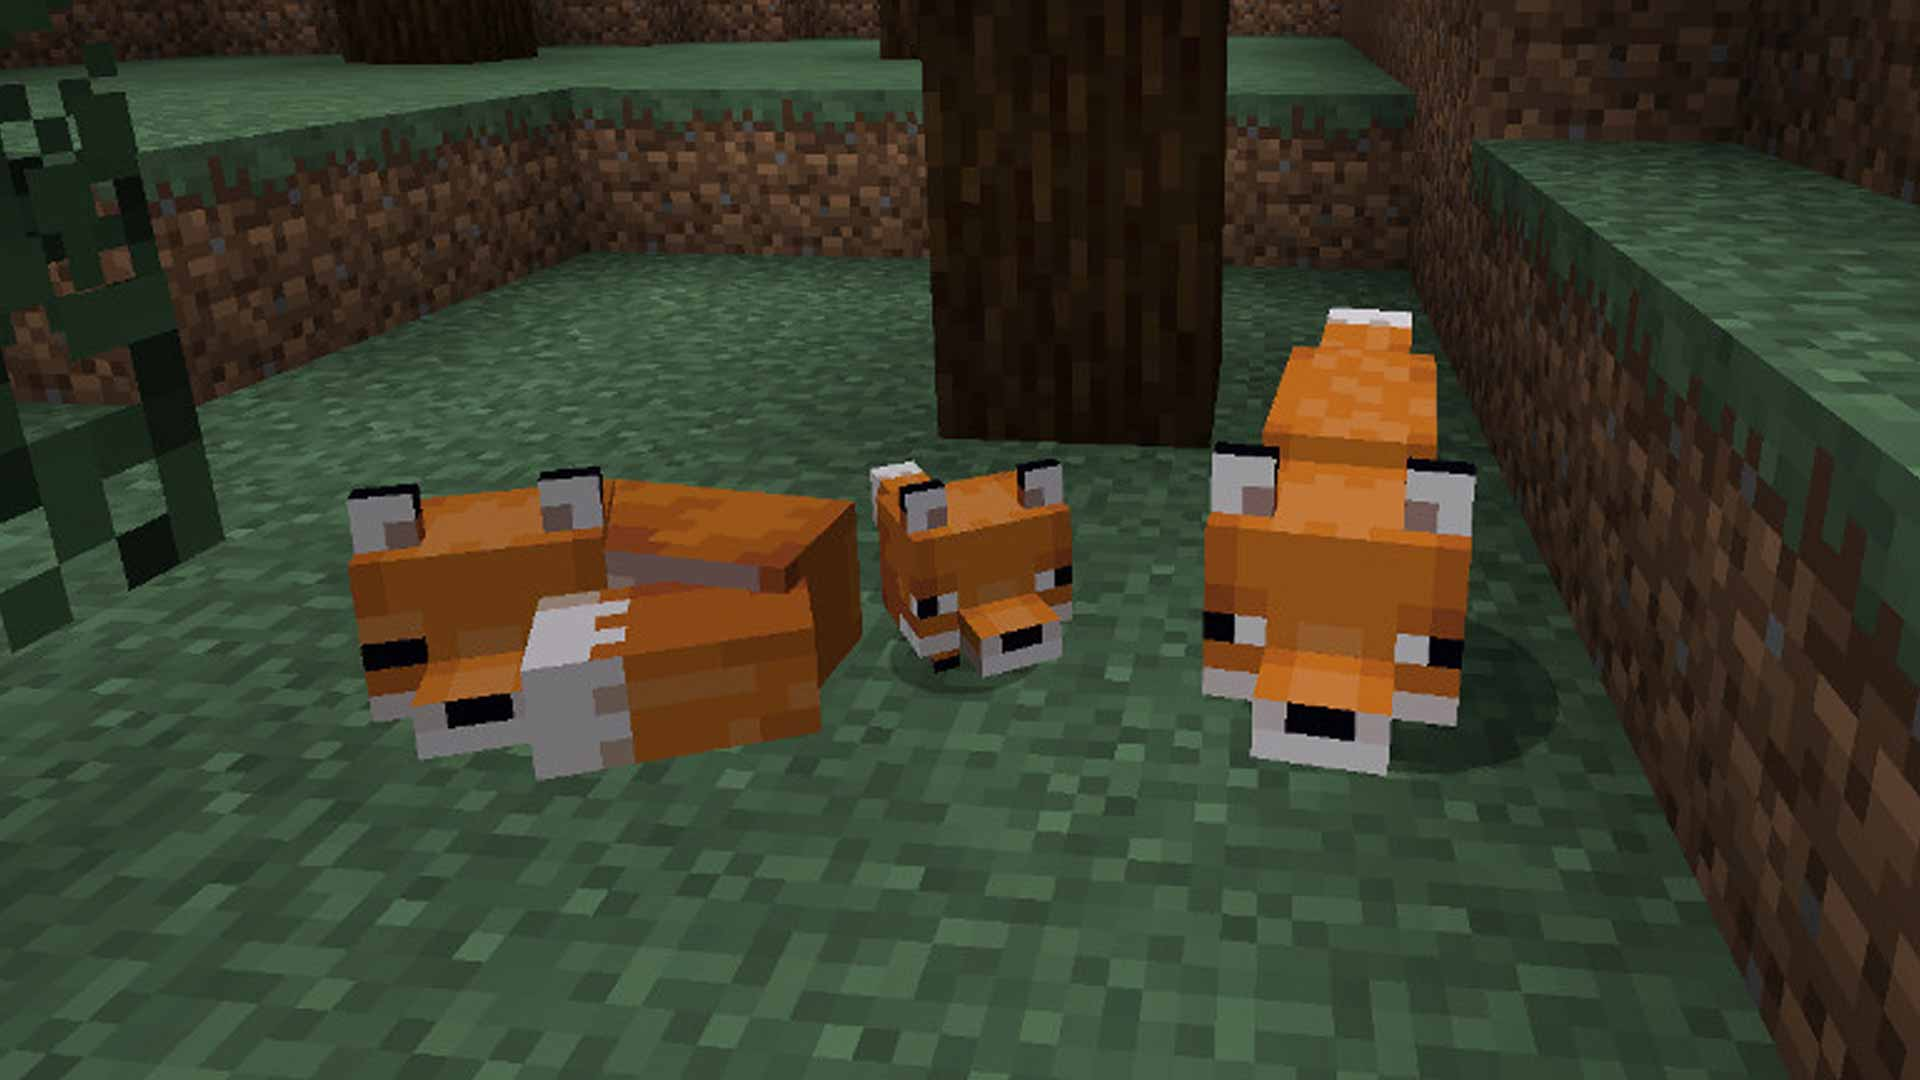 How To Tame A Fox In Minecraft And Make A New Friend Gamesradar